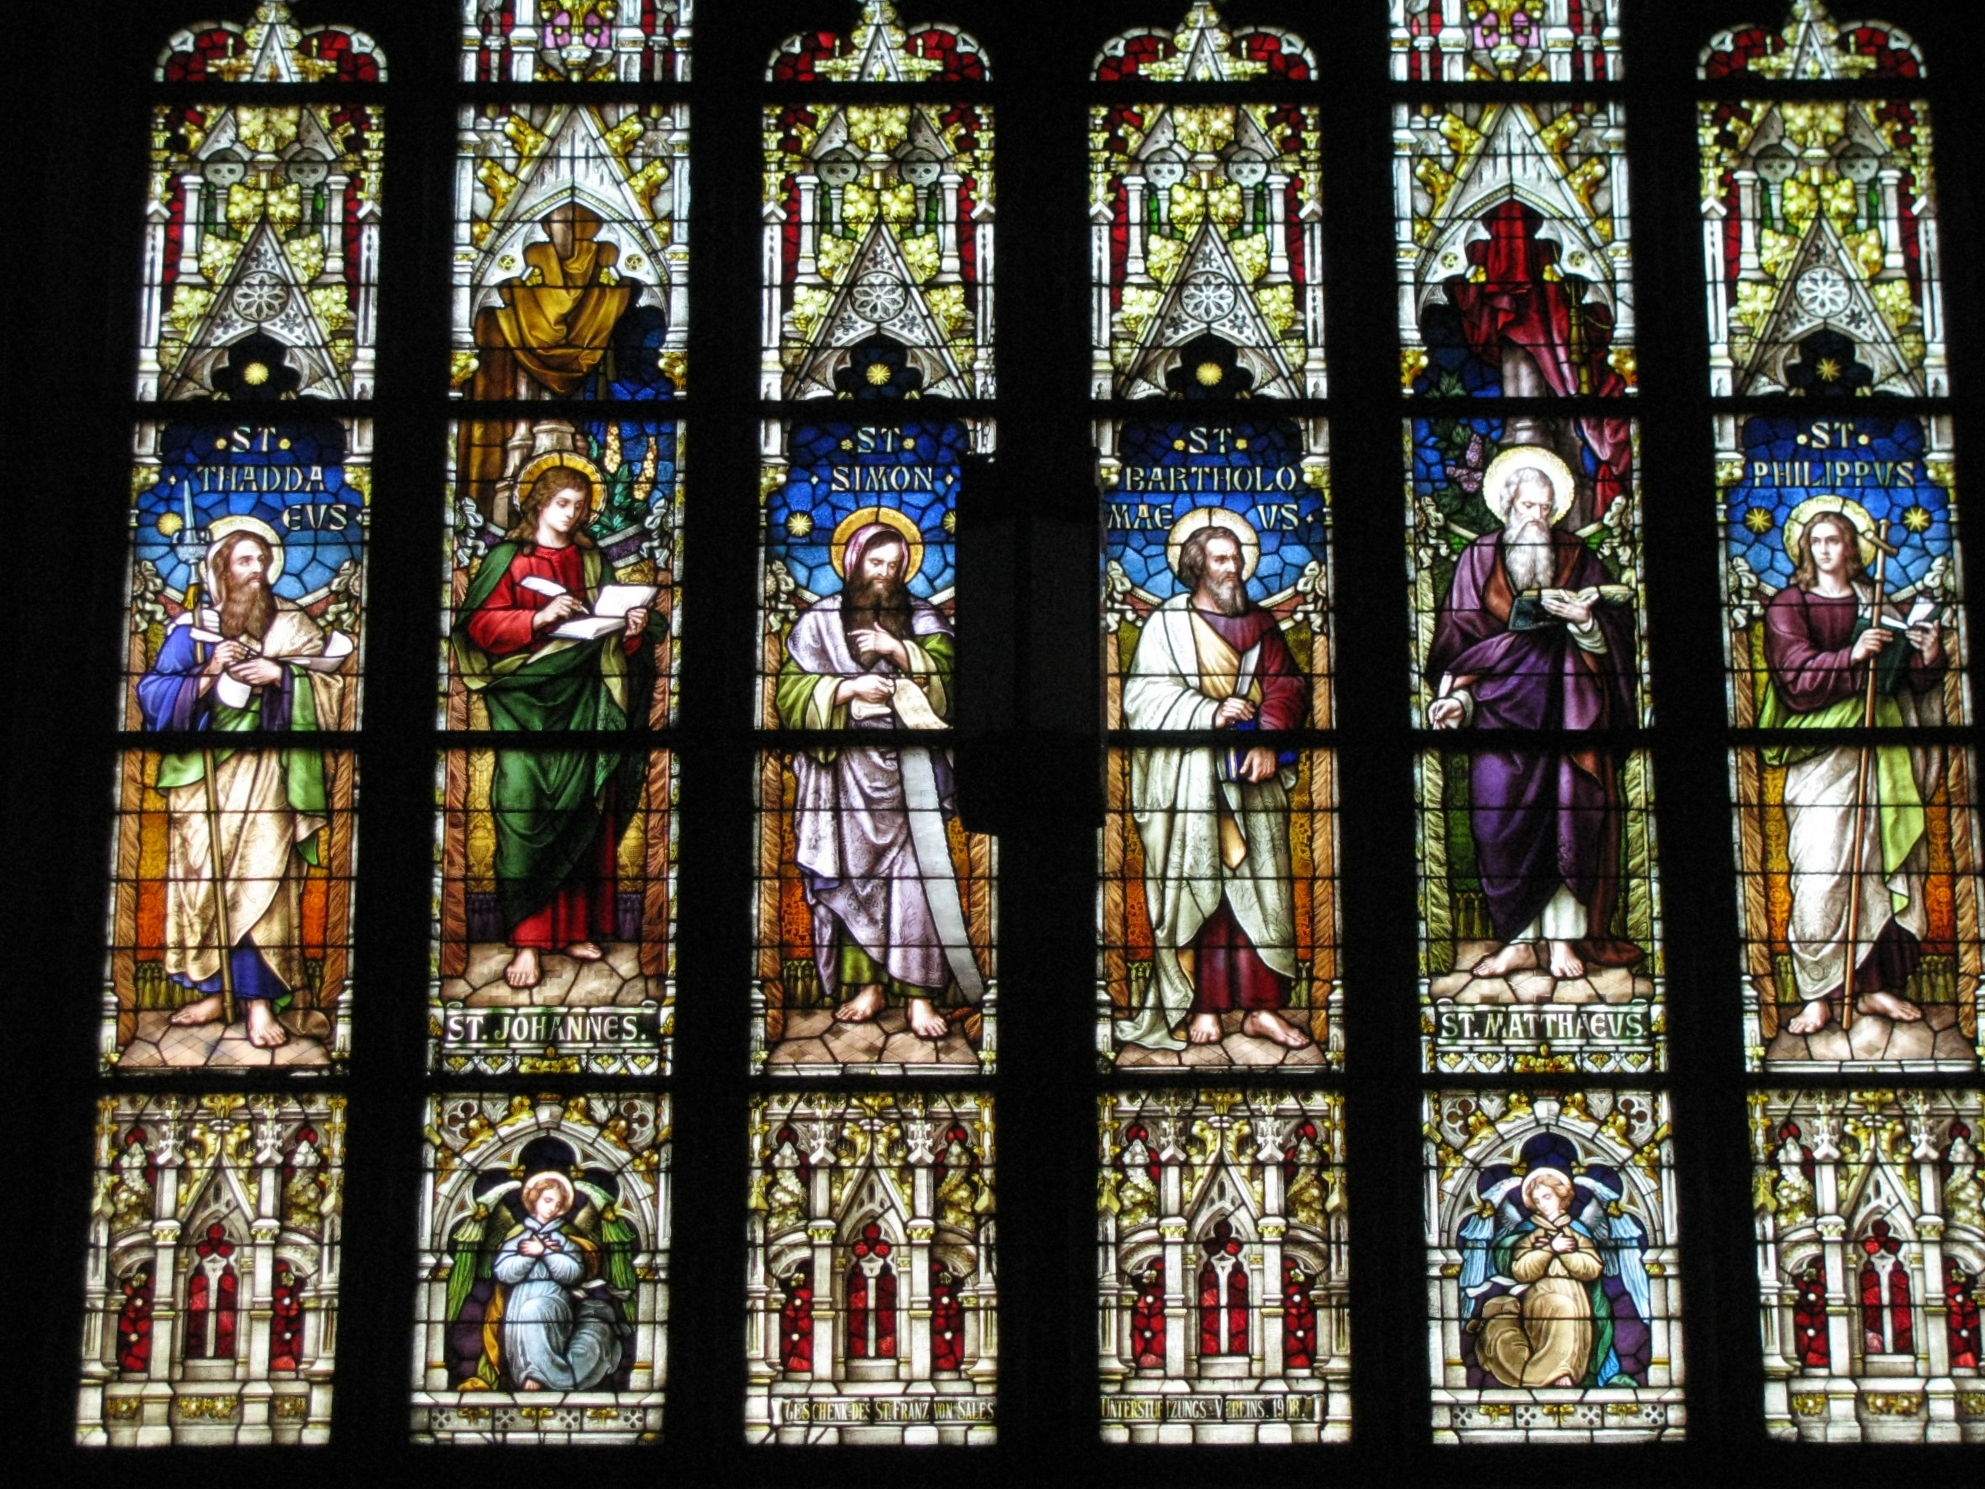 The churchs stained glass windows were created by Emil Frei, Sr., considered to be St. Louis' premier stained glass artist, who studied at the Munich School of Arts and Crafts, and designed the stained glass windows of several St. Louis churches.